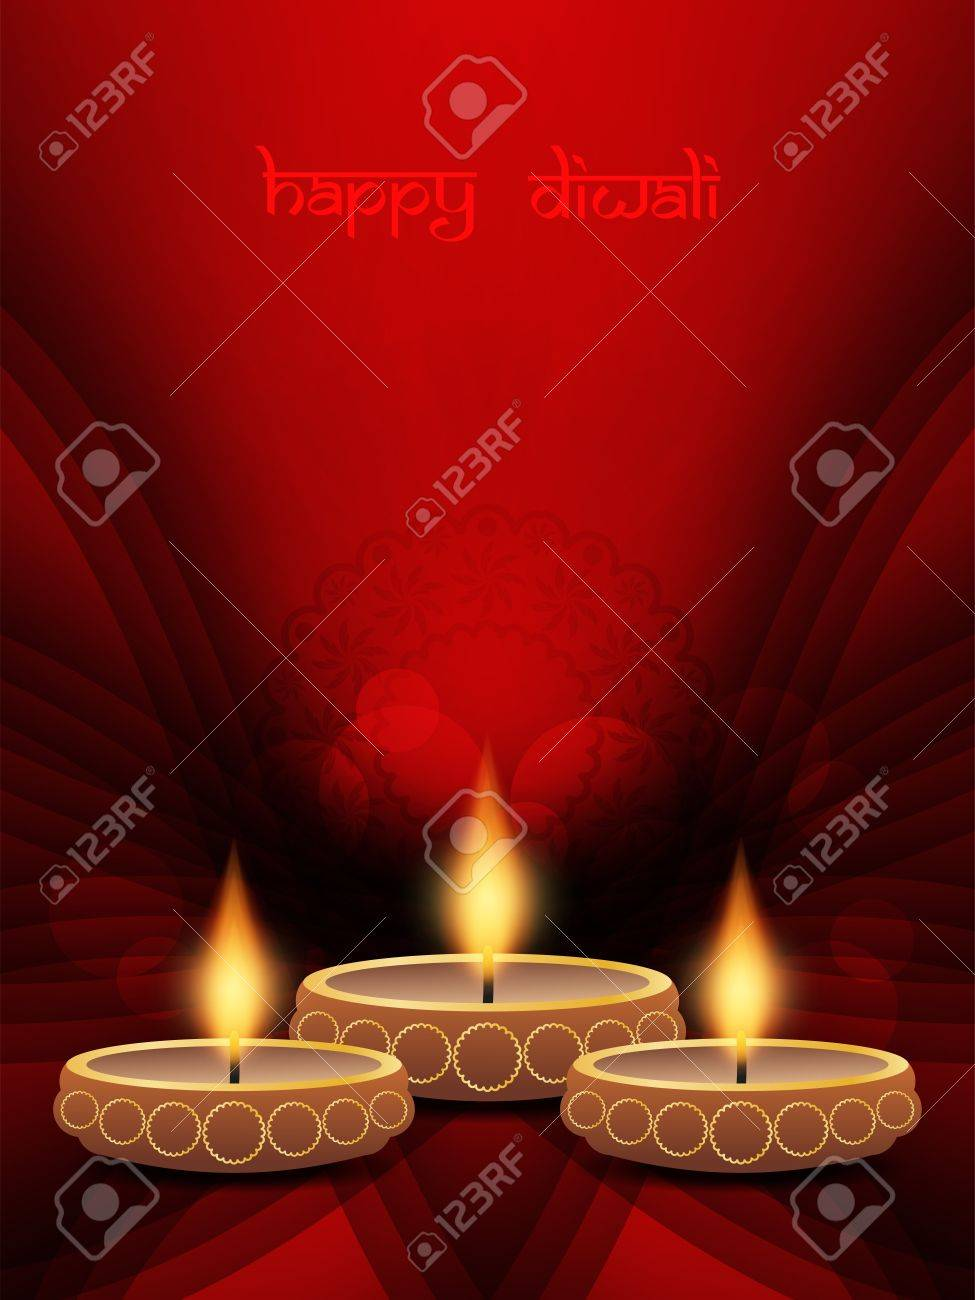 elegant background design for diwali festival with beautiful lamps Stock Vector - 21299194